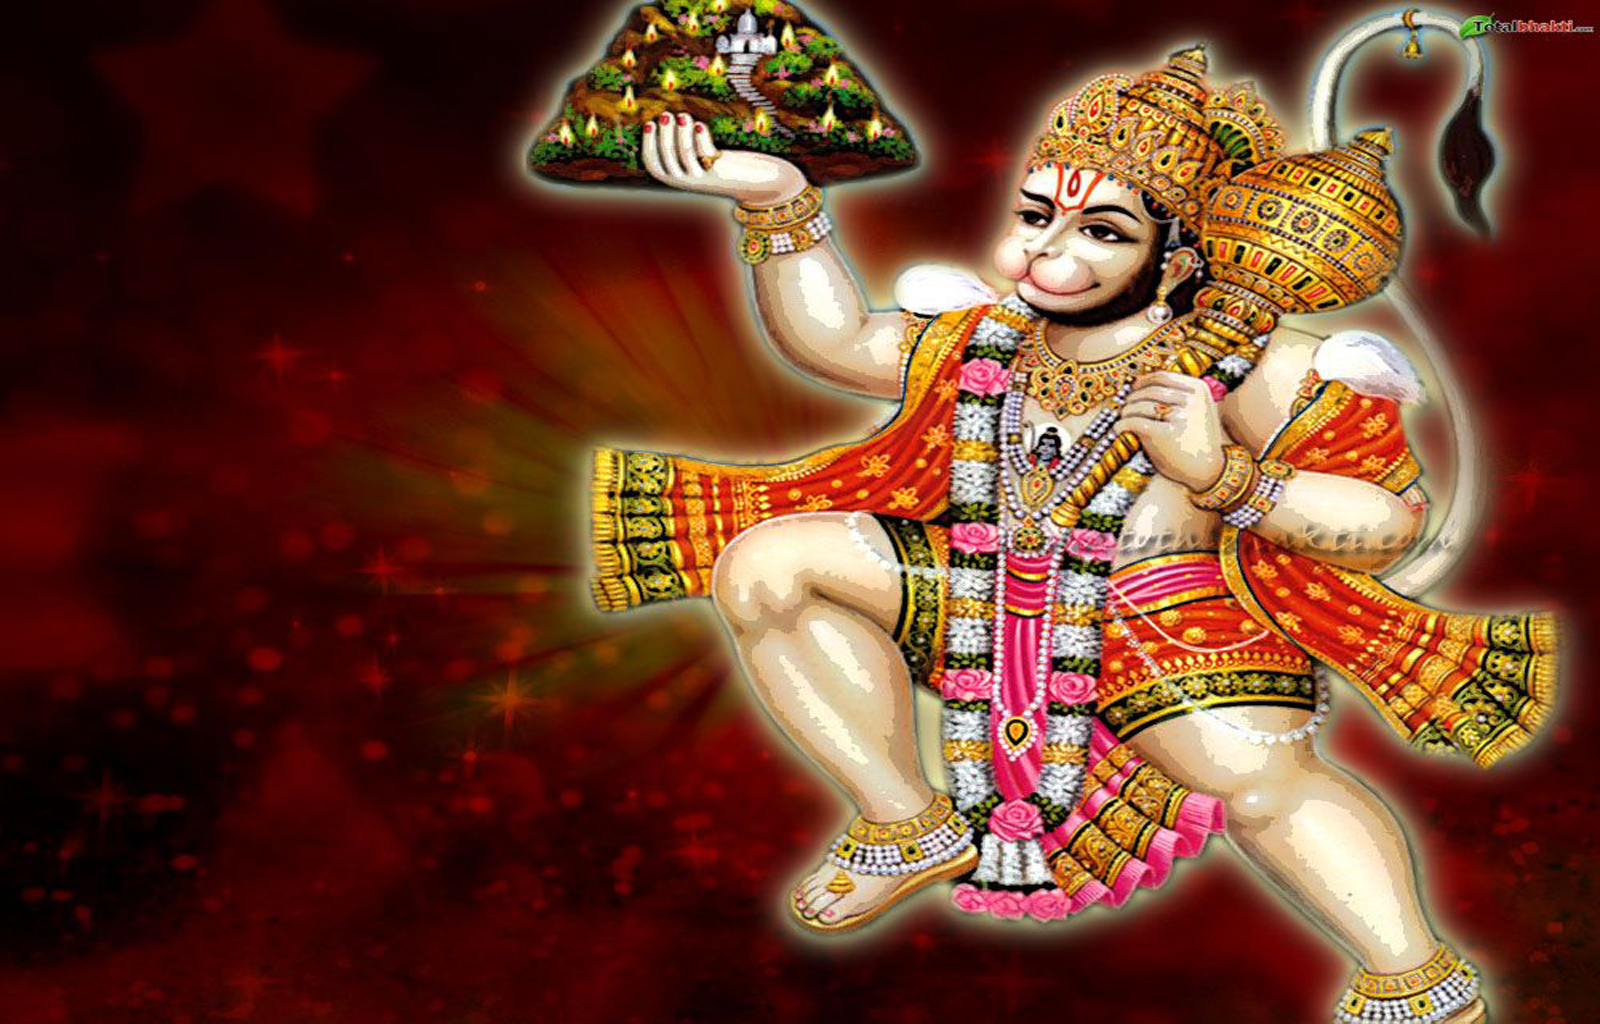 http://2.bp.blogspot.com/-VR7vuGHFPRY/UEImz-sgZuI/AAAAAAAATVk/tF8RjnMKts4/s1600/Hanuman-Jayanti-powerful+wallpapers-windows-mac+(5).jpg